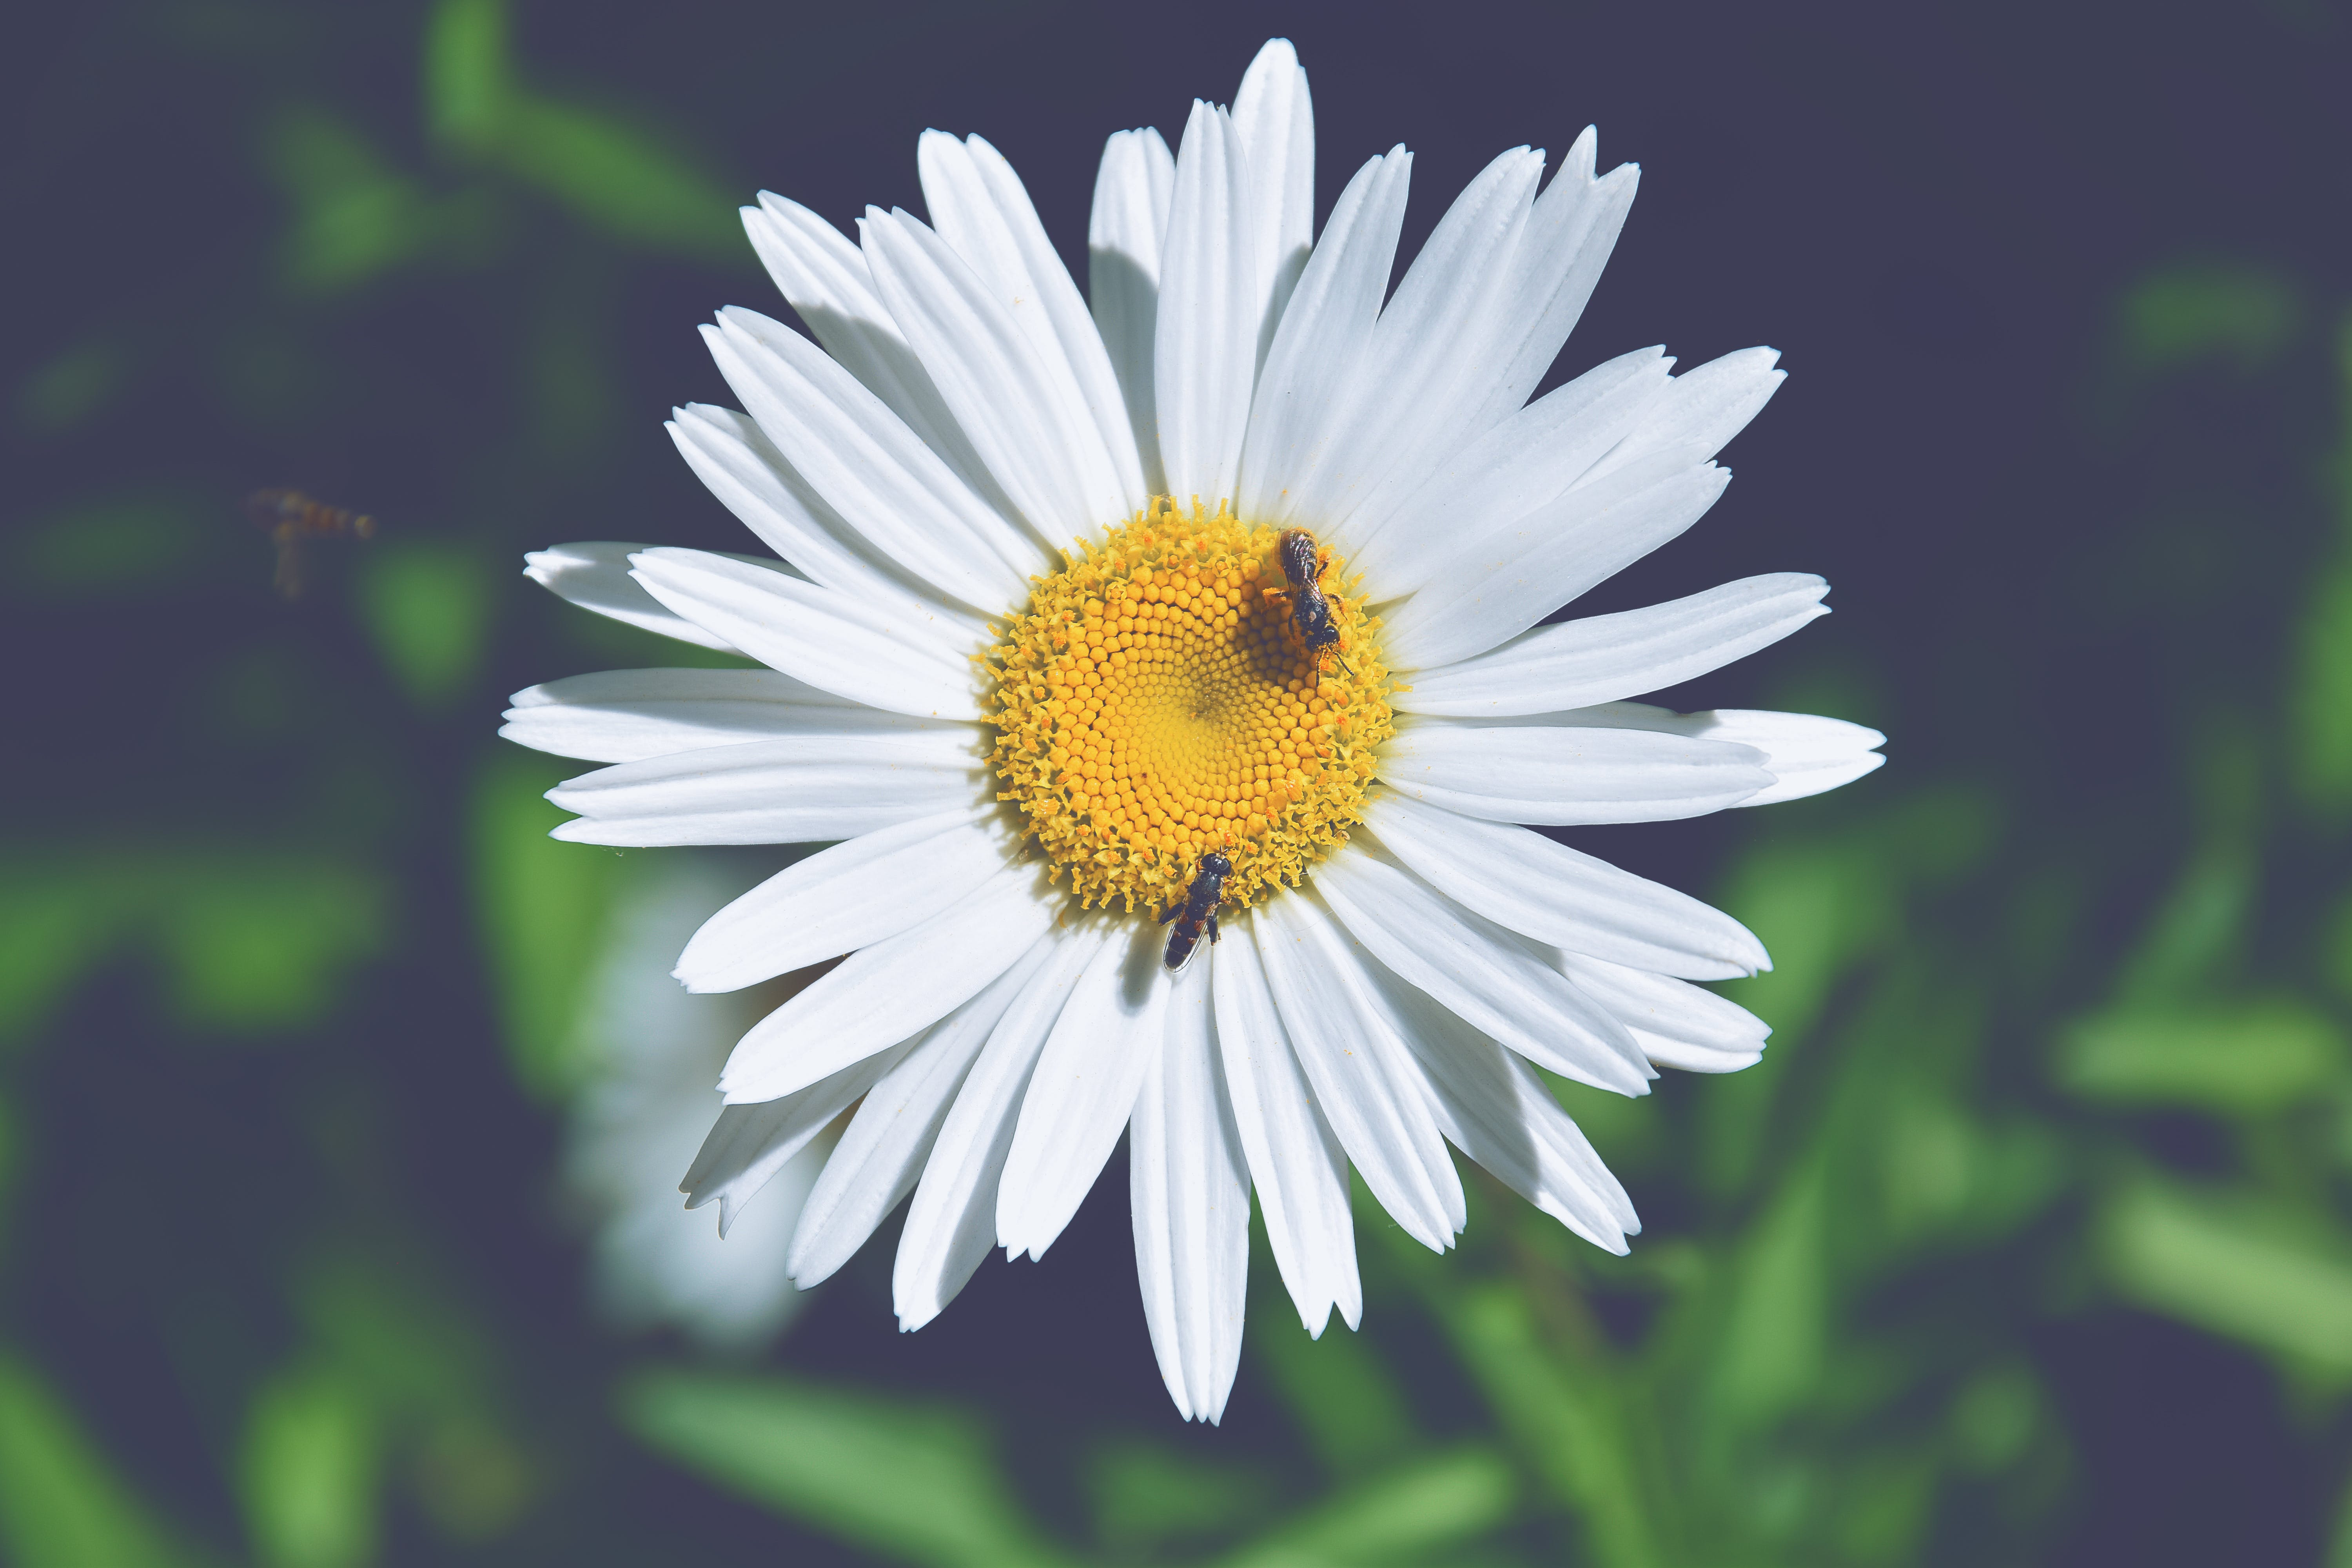 Two Bees Perching on White Daisy Flower